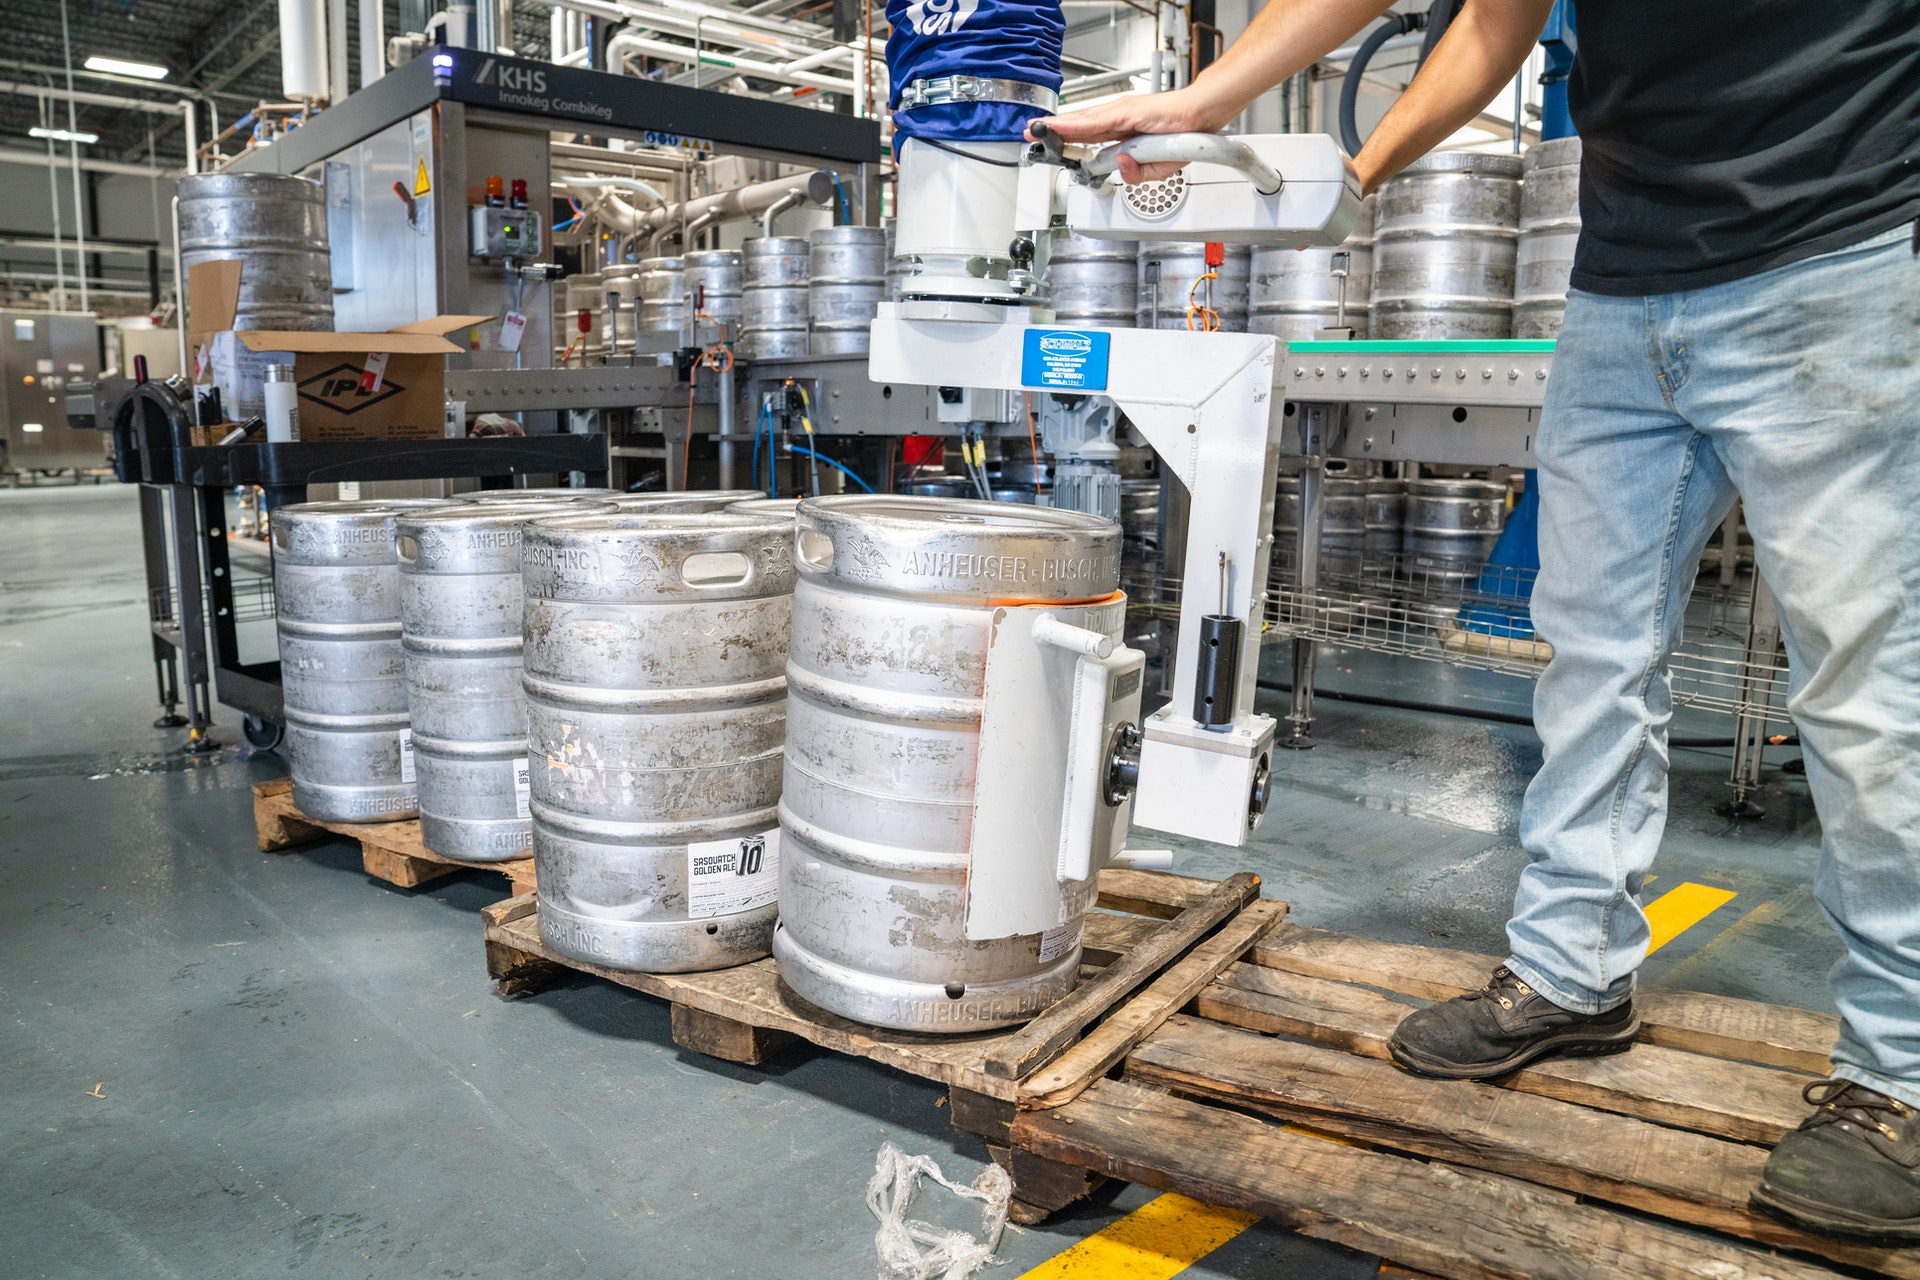 Man on palette with kegs in warehouse